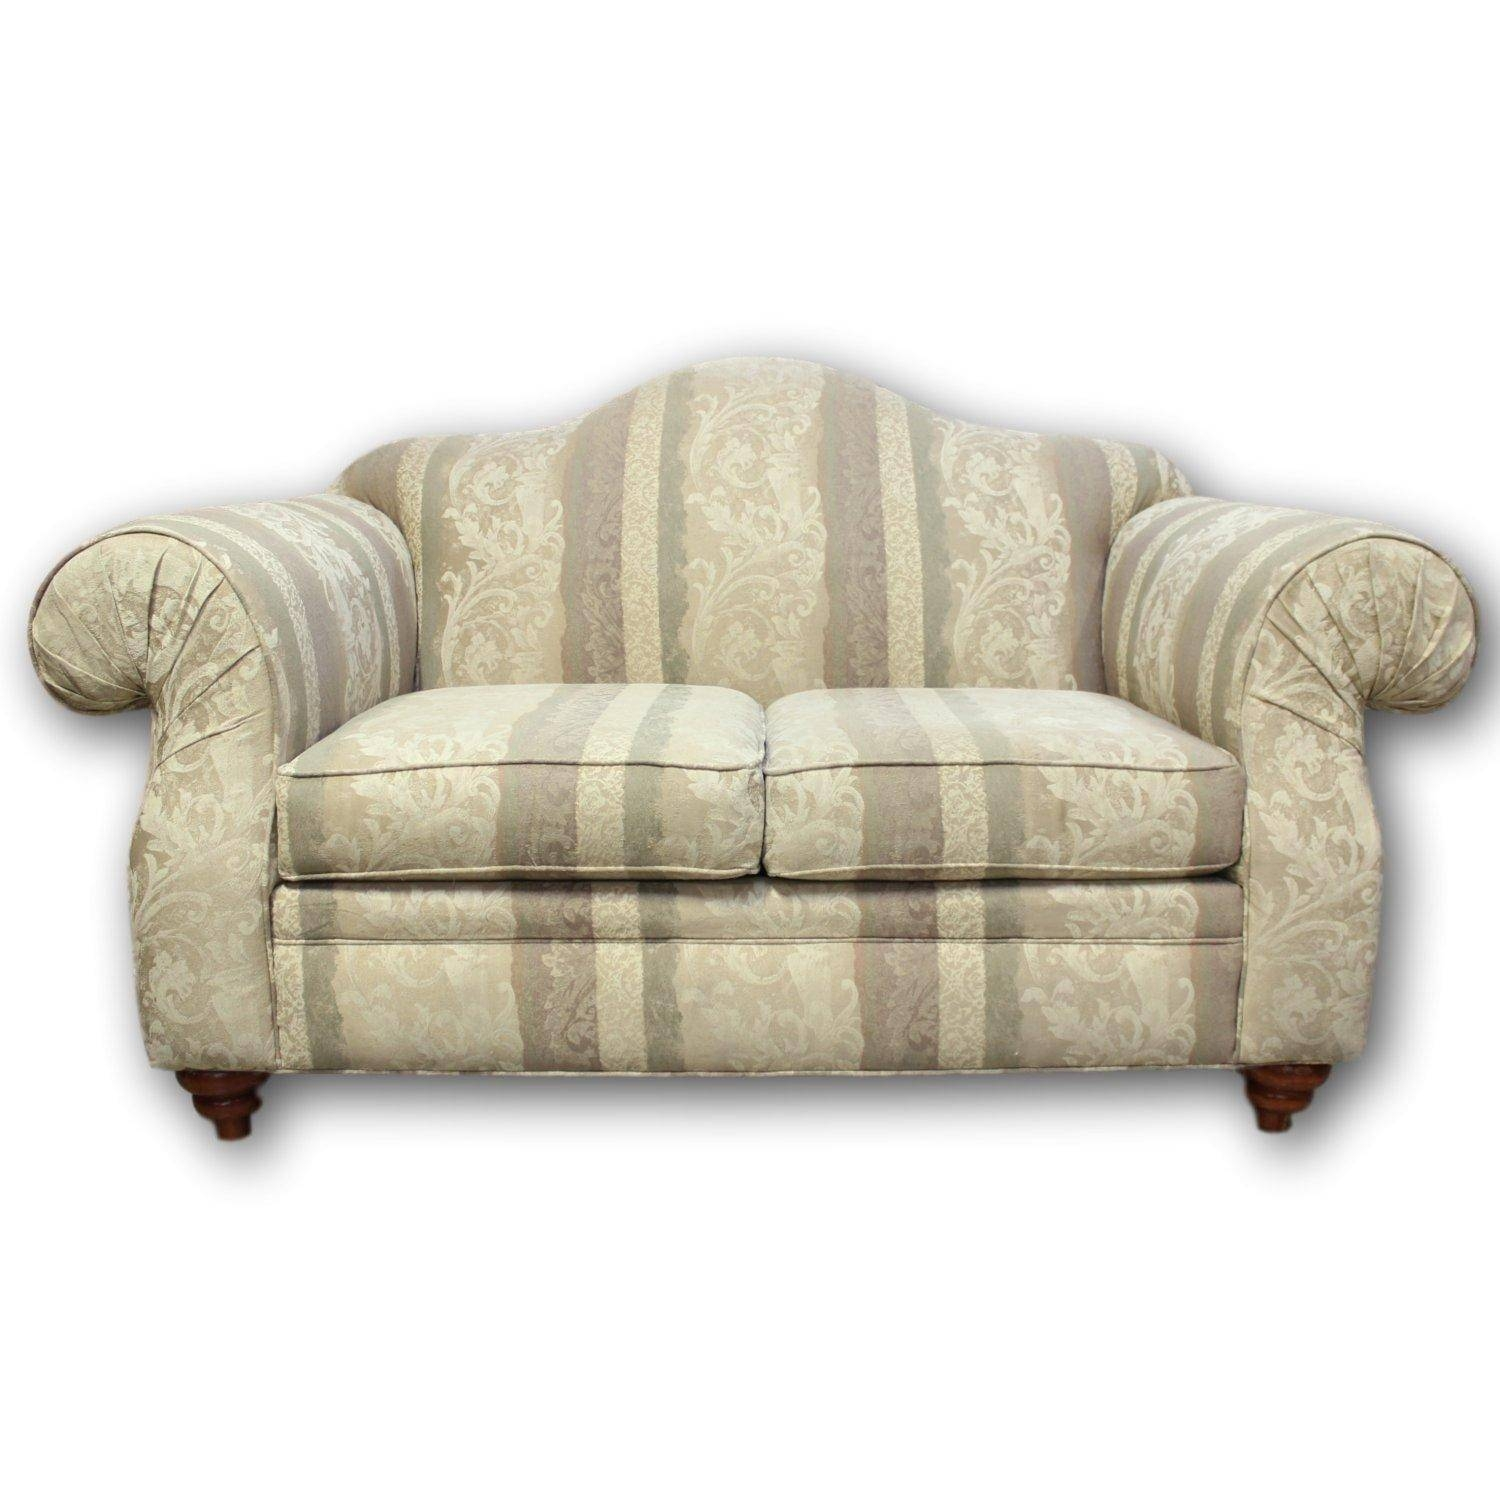 20 Best Collection Of Alan White Couches | Sofa Ideas for Alan White Couches (Image 1 of 15)